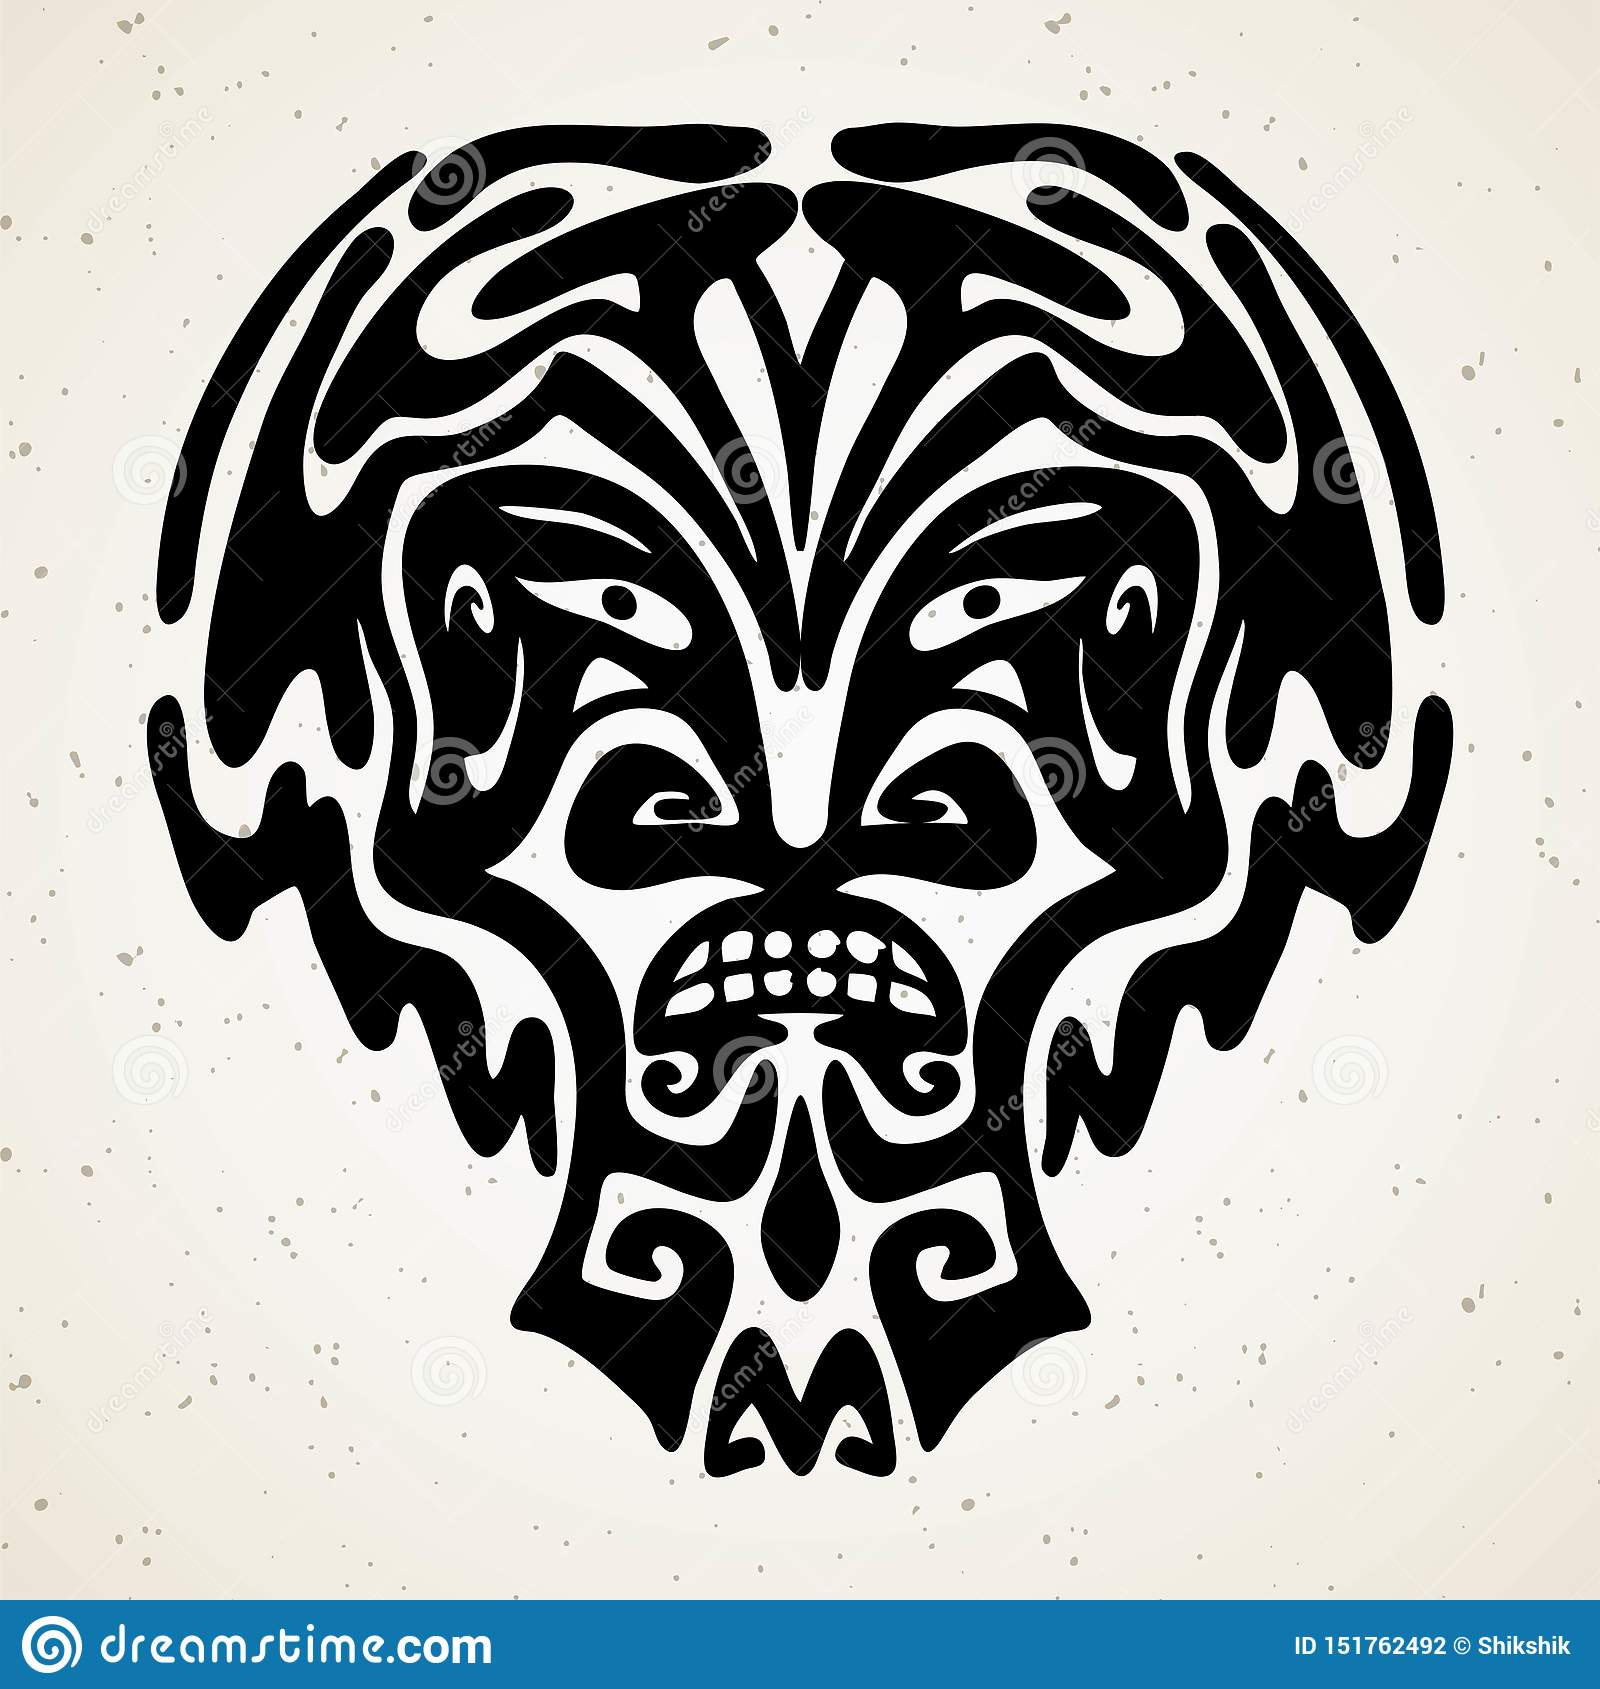 Tribal Tattoo With The God Mask. Authentic Artwork With A Symbol Of ...